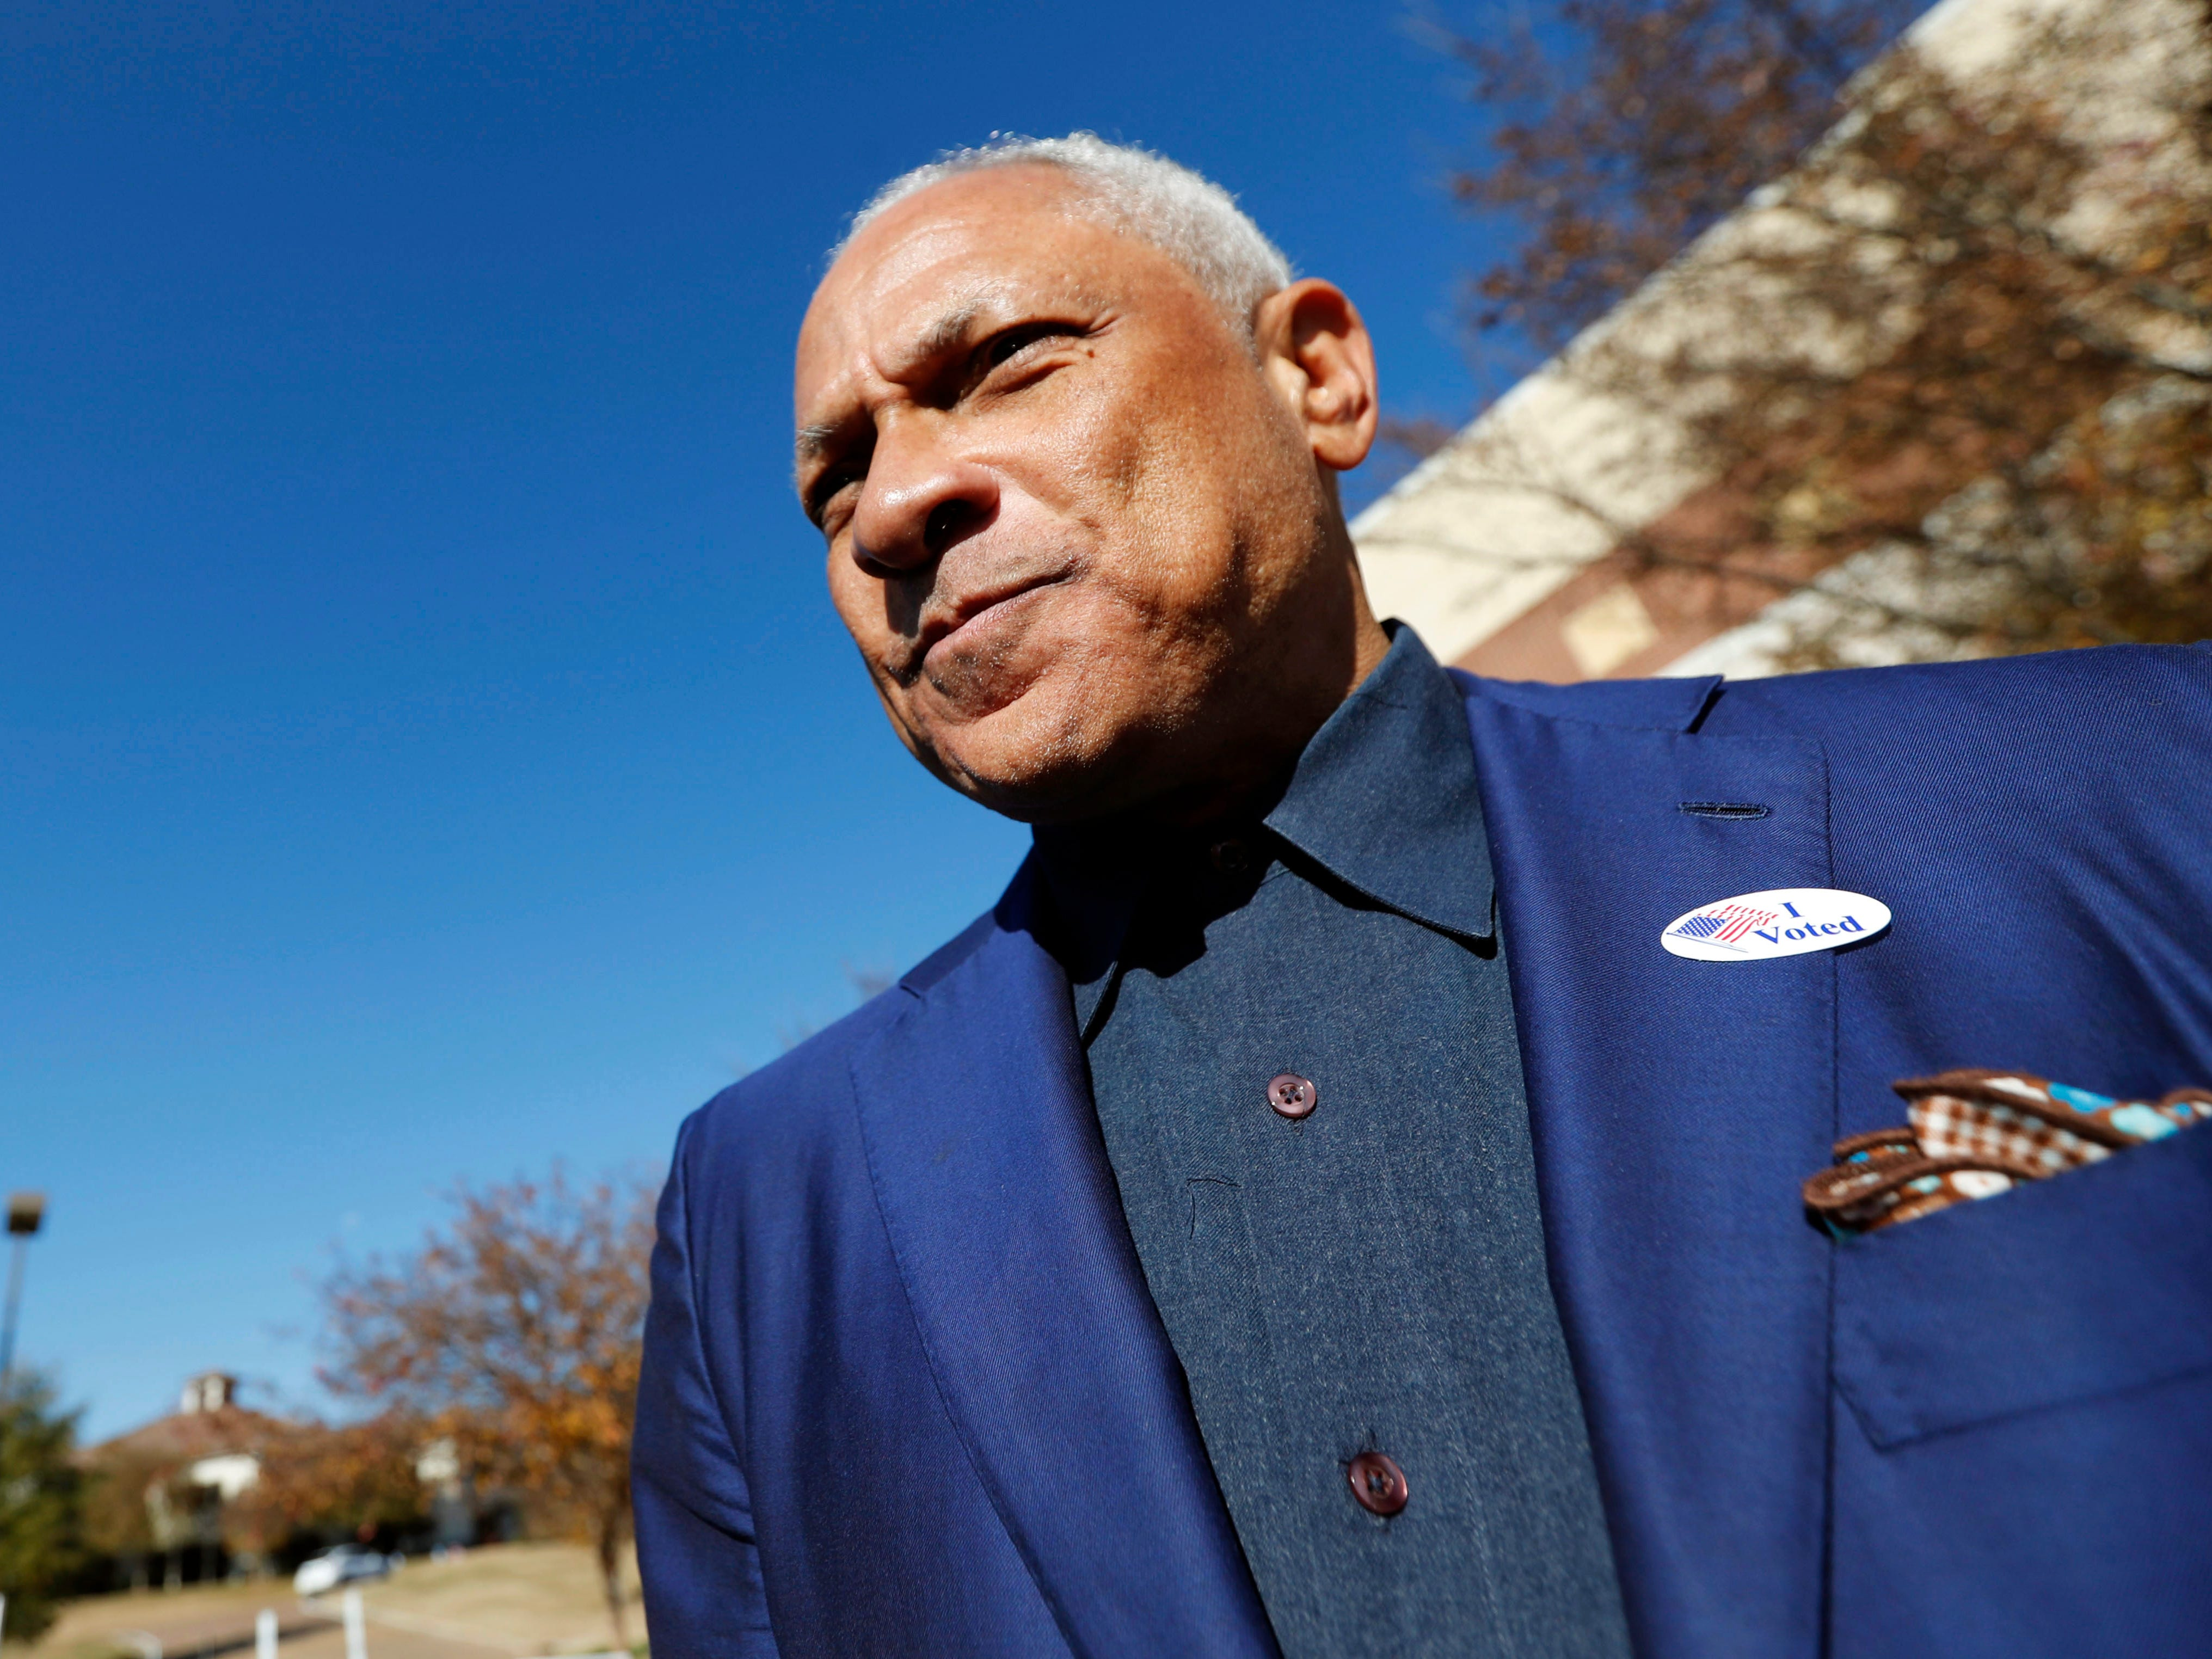 Democrat Mike Espy leaves his precinct after voting in a runoff election Tuesday, Nov. 27, 2018 in Ridgeland, Miss.  Mississippi voters are deciding the last U.S. Senate race of the midterms, choosing between Espy and Republican Sen. Cindy Hyde-Smith.